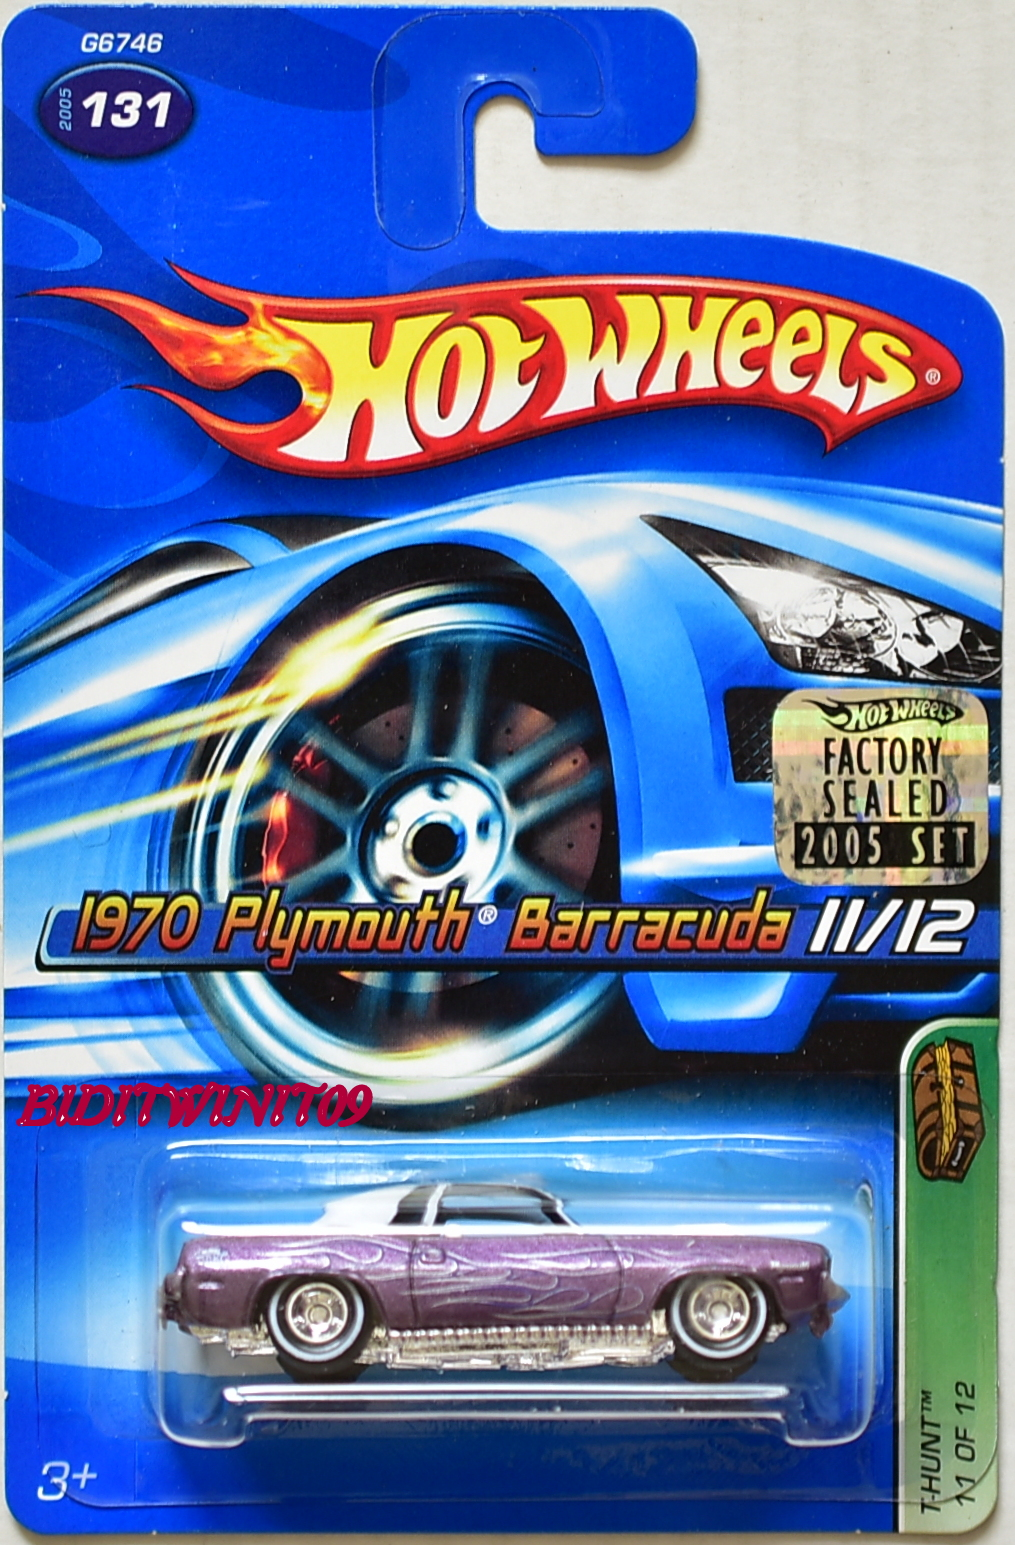 HOT WHEELS 2005 TREASURE HUNT 1970 PLYMOUTH BARRACUDA #11/12 FACTORY SEALED E+